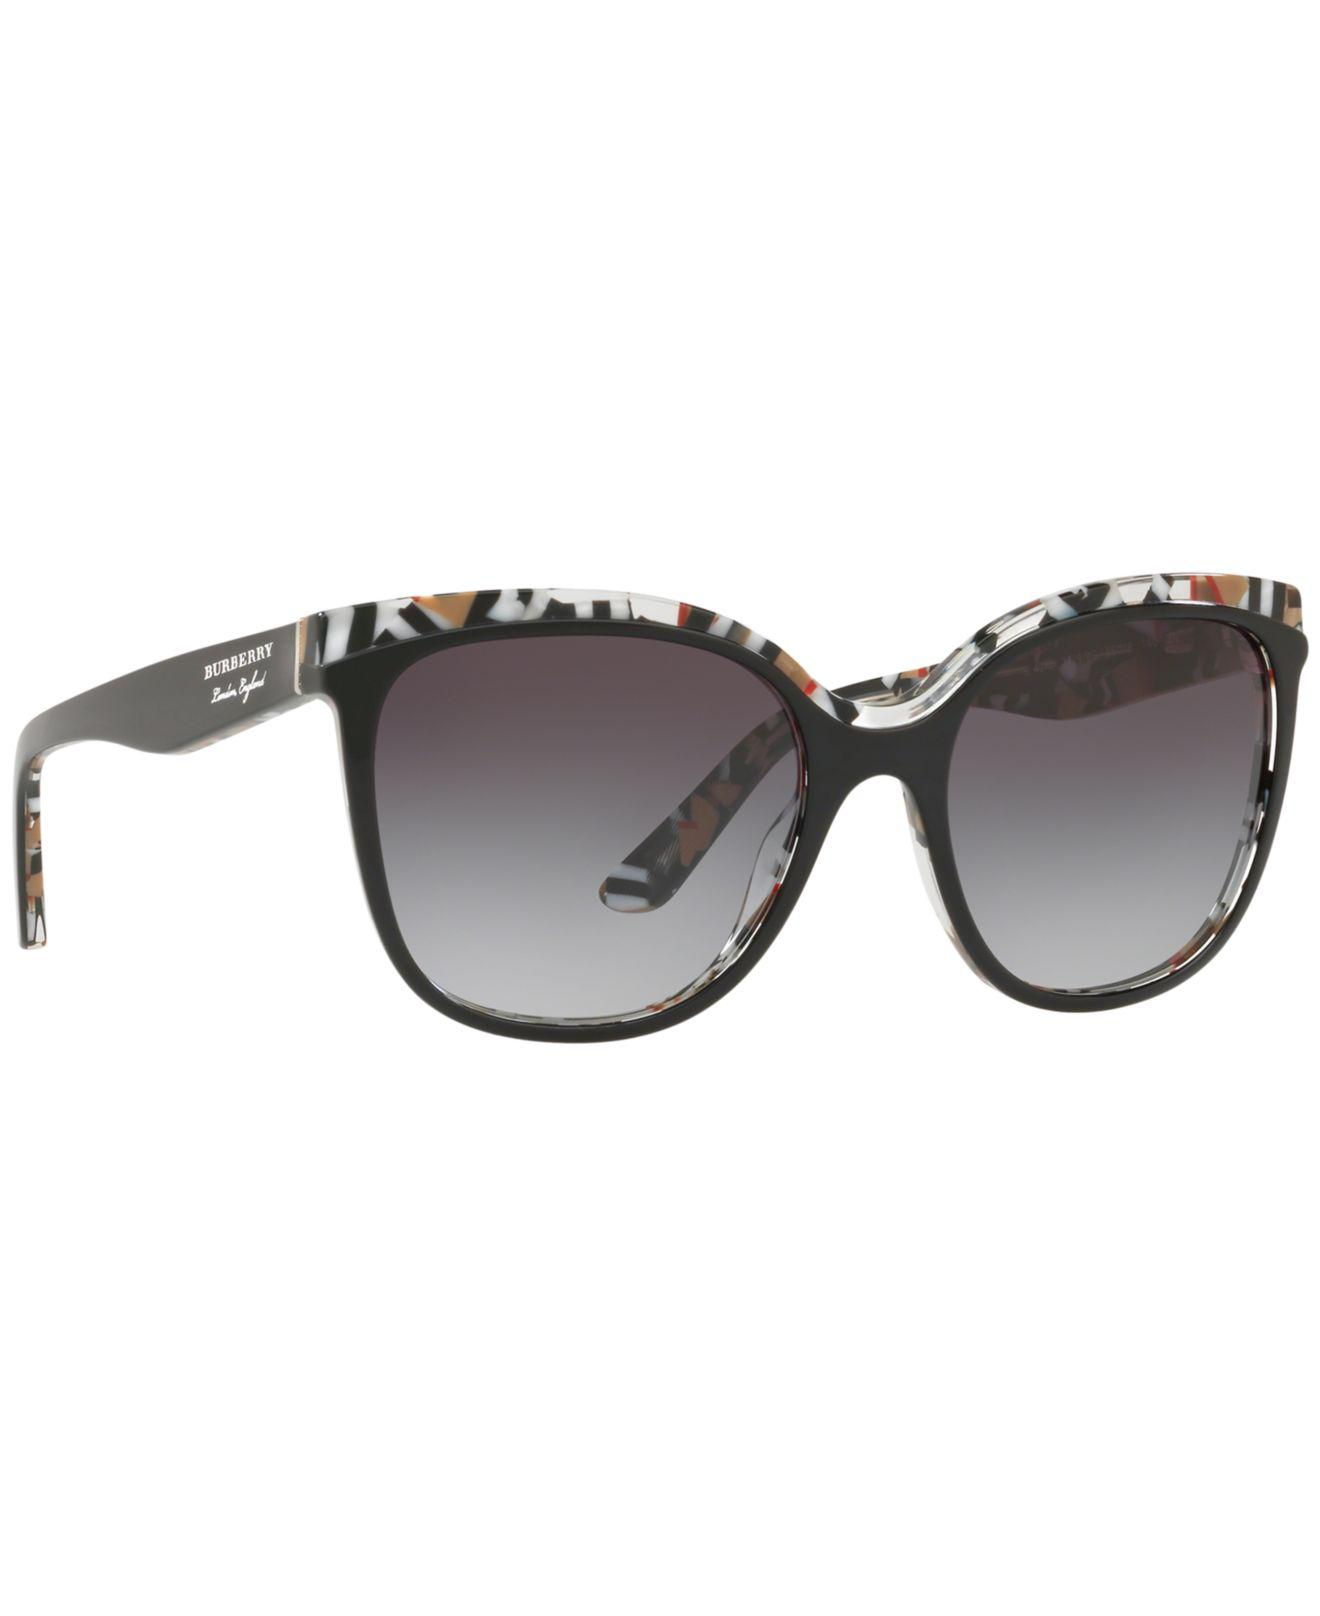 d4e394b7efa Burberry - Multicolor Sunglasses